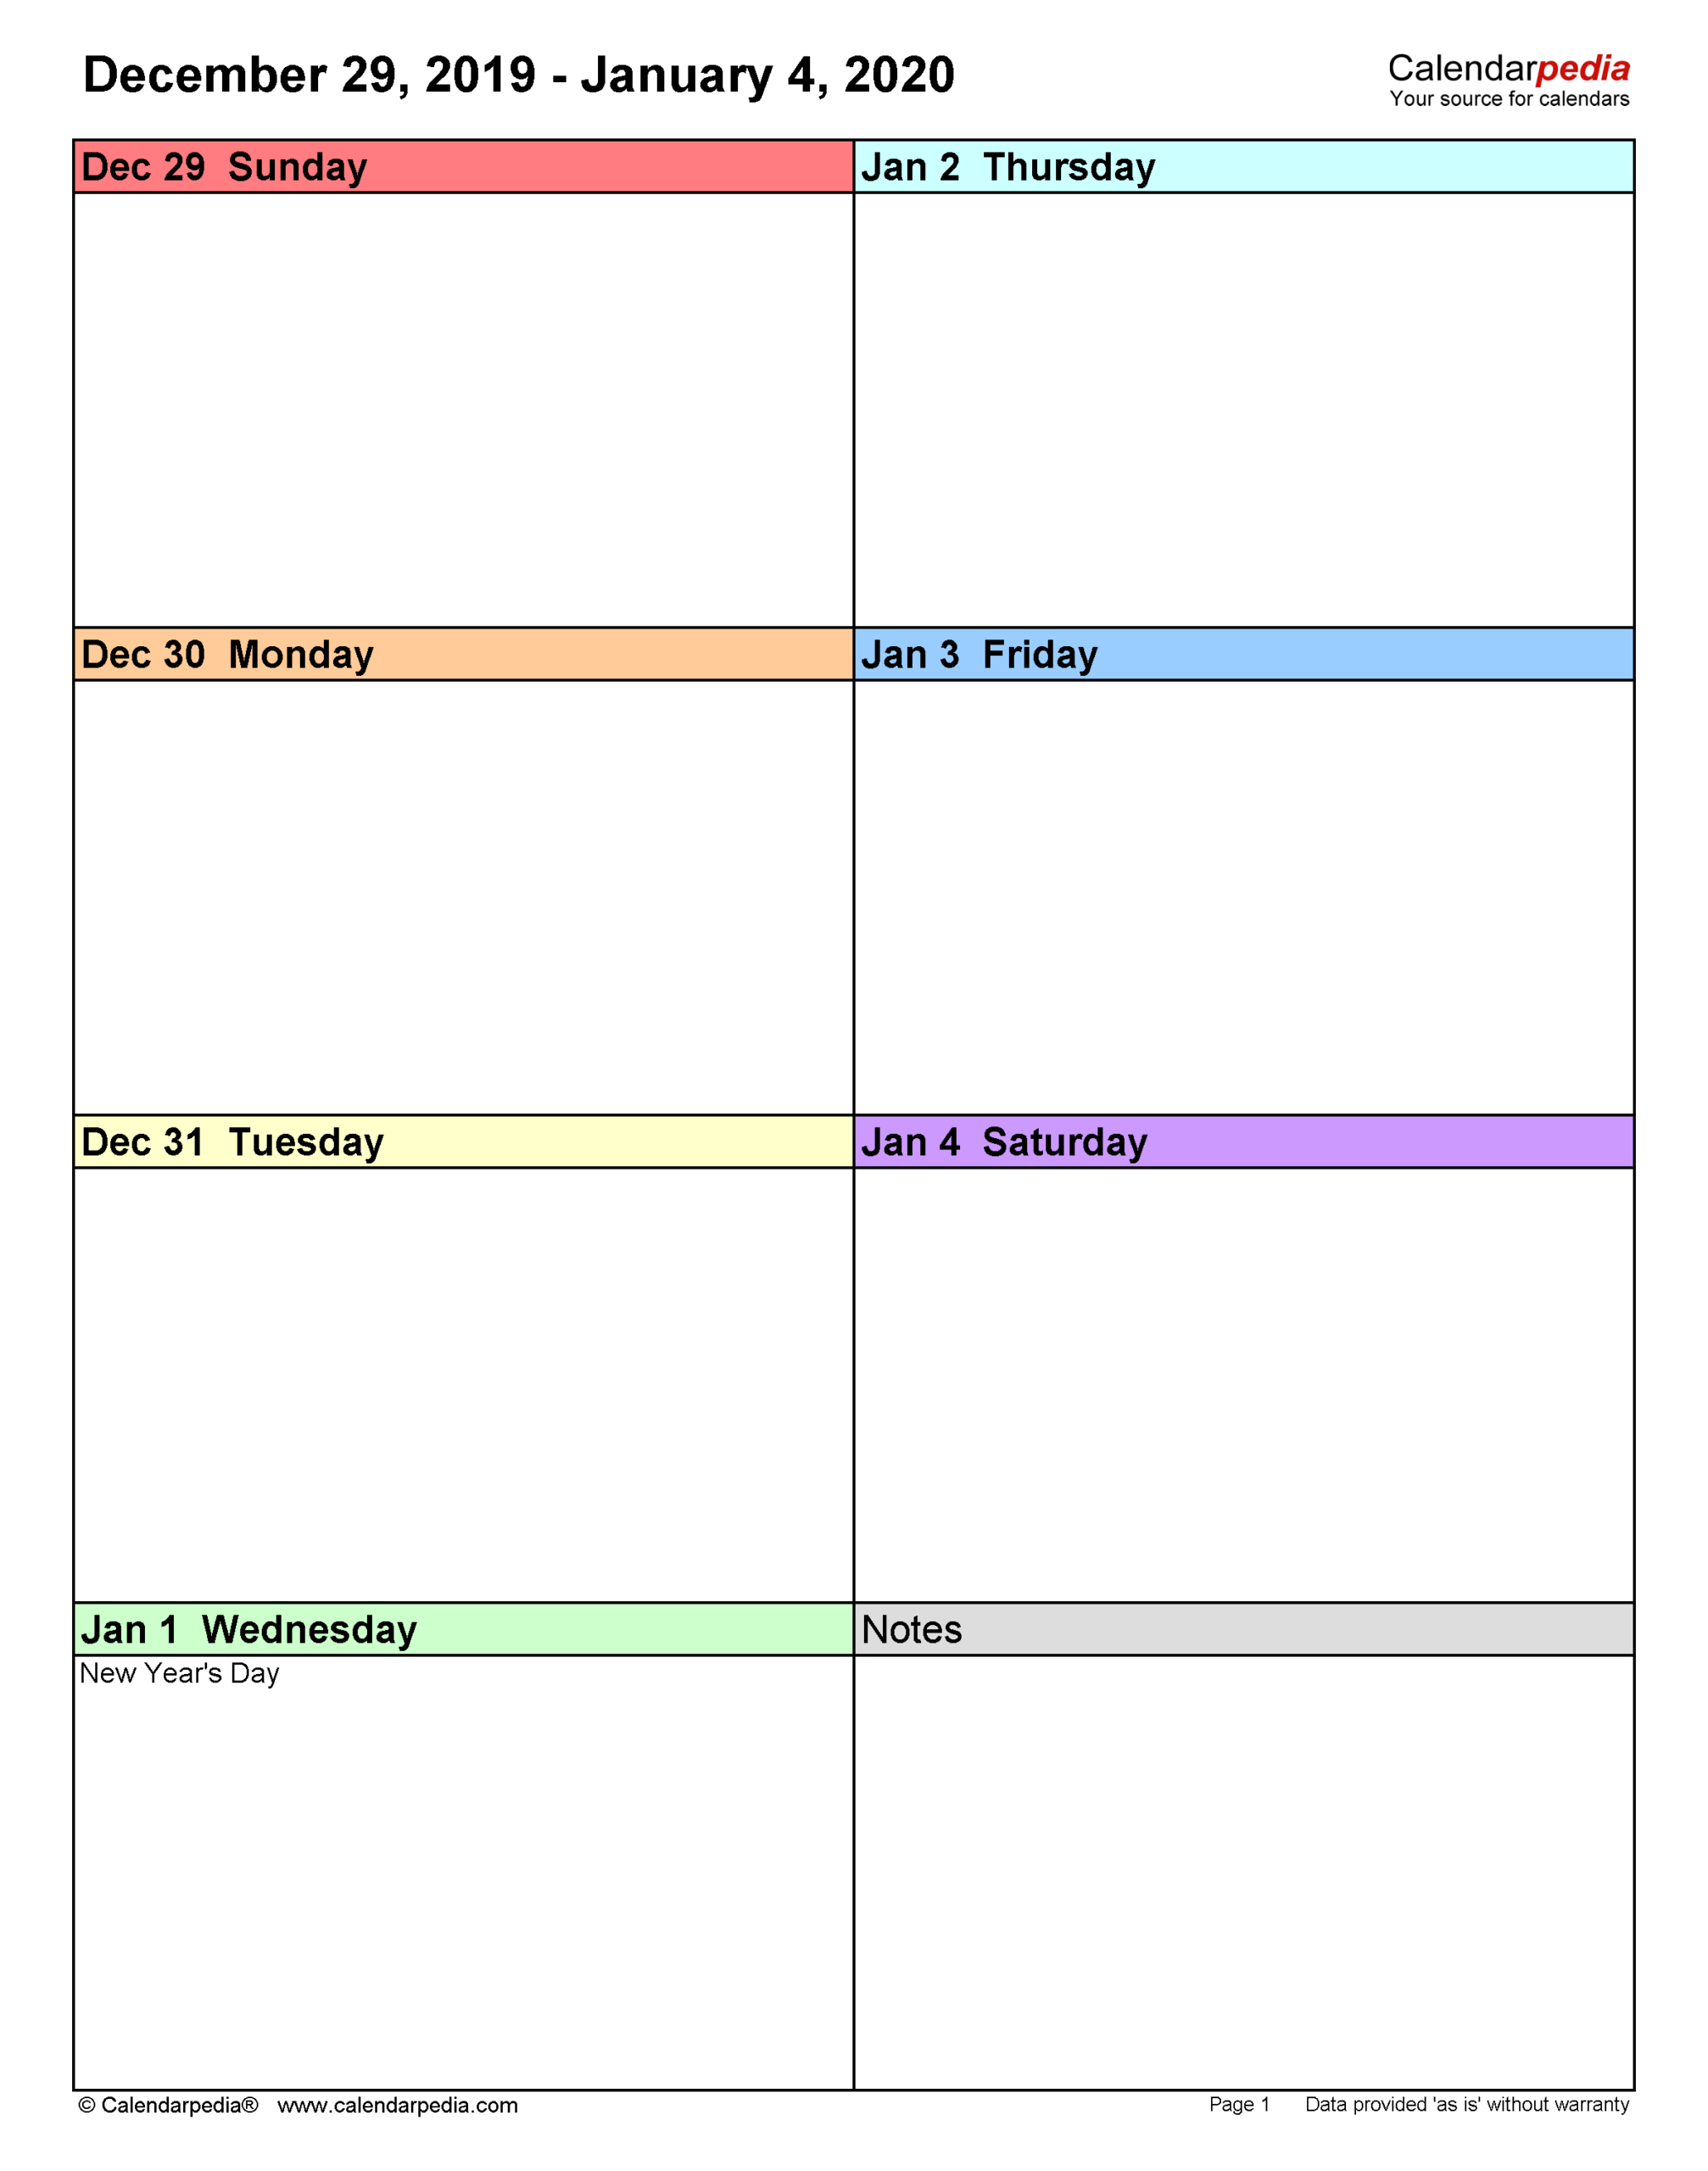 Weekly Calendars 2020 For Word - 12 Free Printable Templates in Calendar November December January Space To Write At The Side